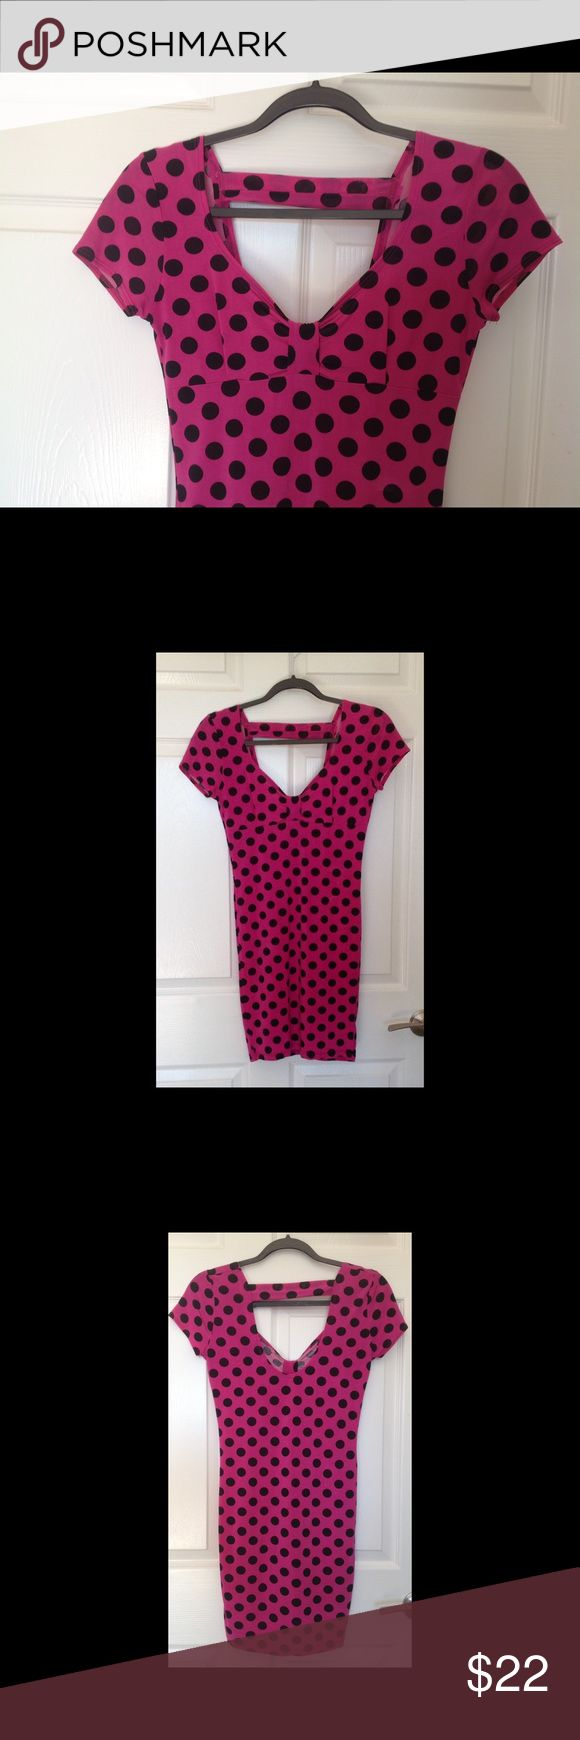 Pink Polka Dot Retro Pinup Bodycon Dress Genuine Demi Loon Polka Dot bodycon short sexy dress.  This dress hugs your curves, and very comfortable.  Has that retro pinup look. Demi Loon Dresses Mini